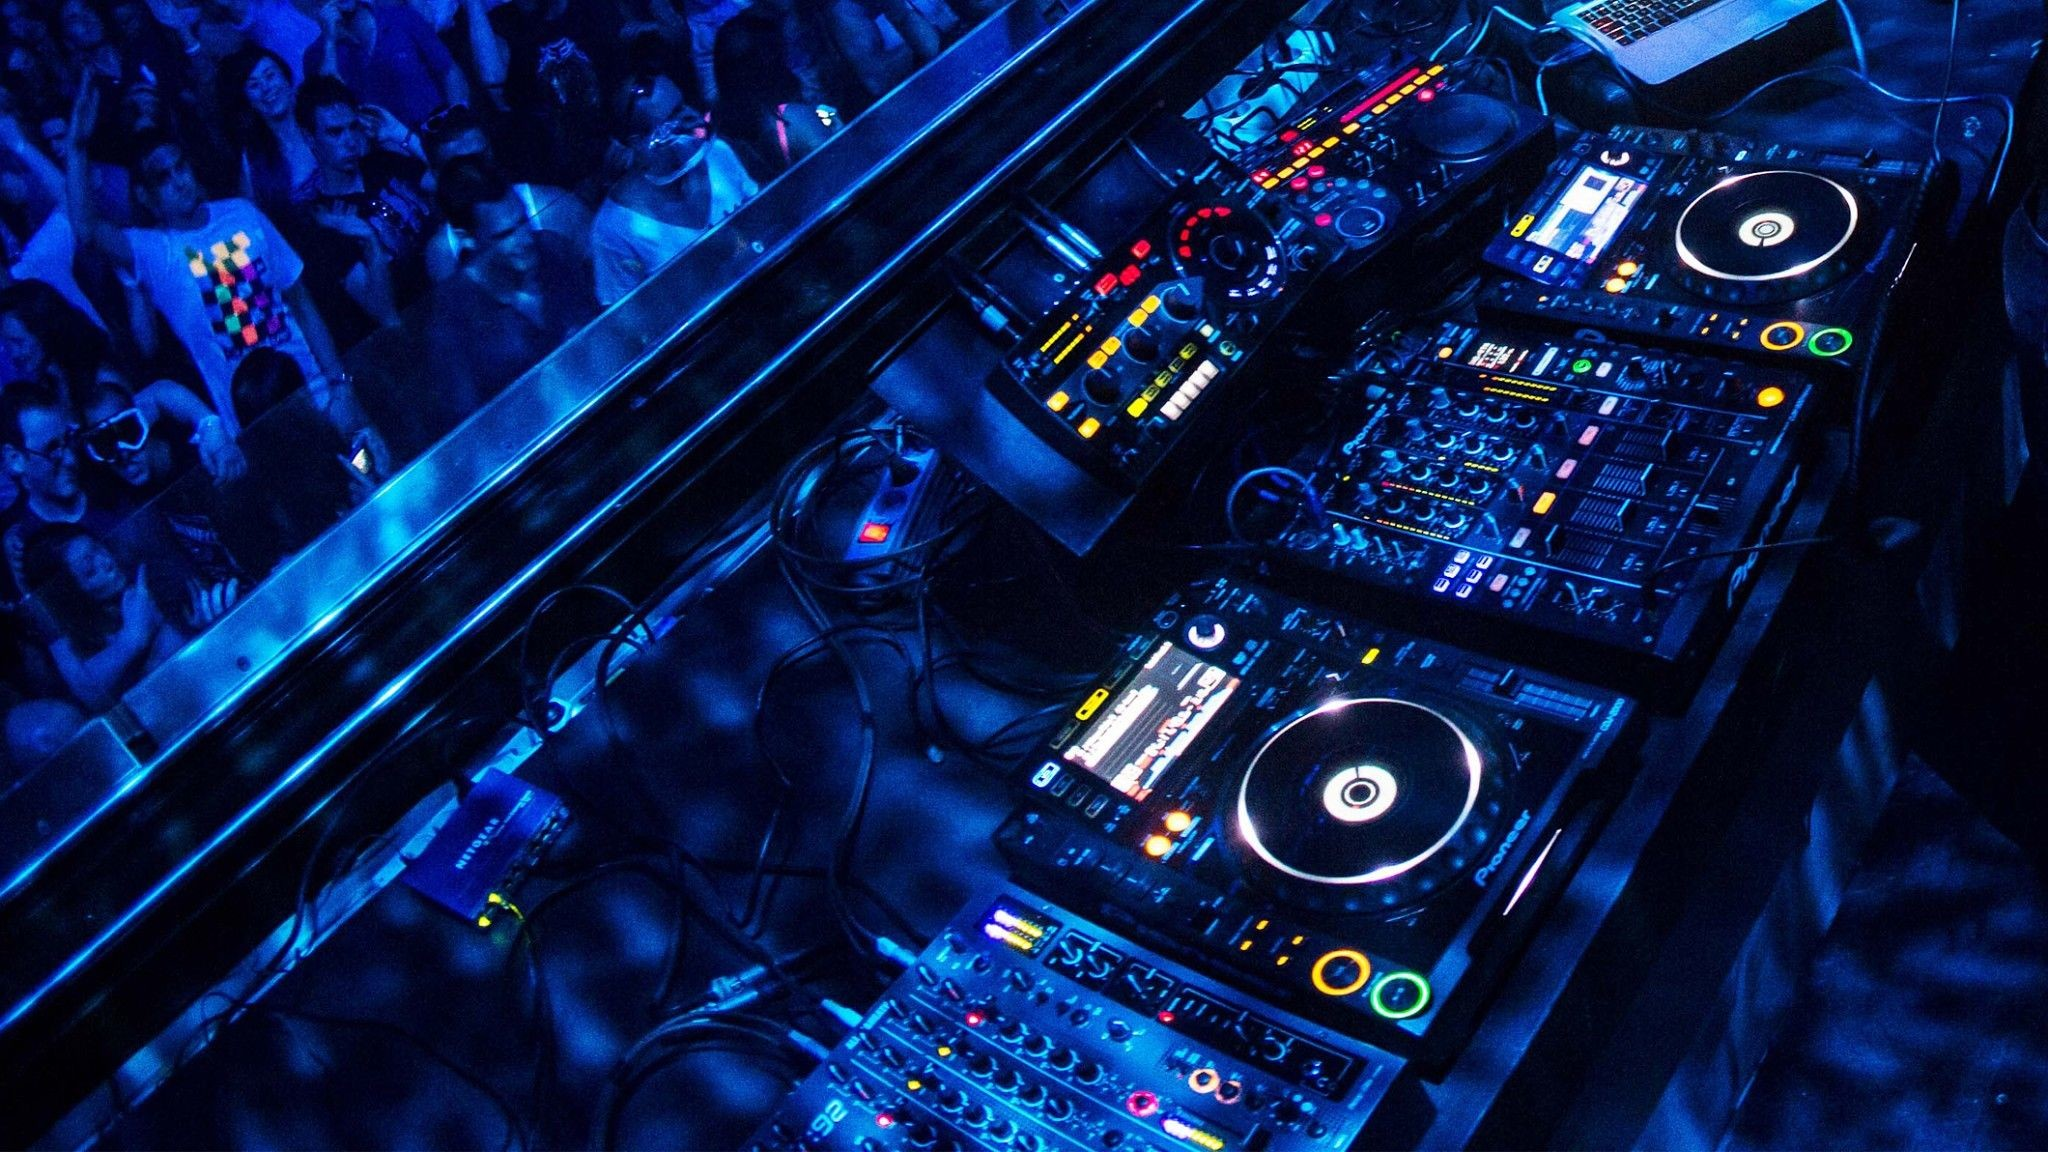 Pioneer Dj Wallpaper Hd 70 Images